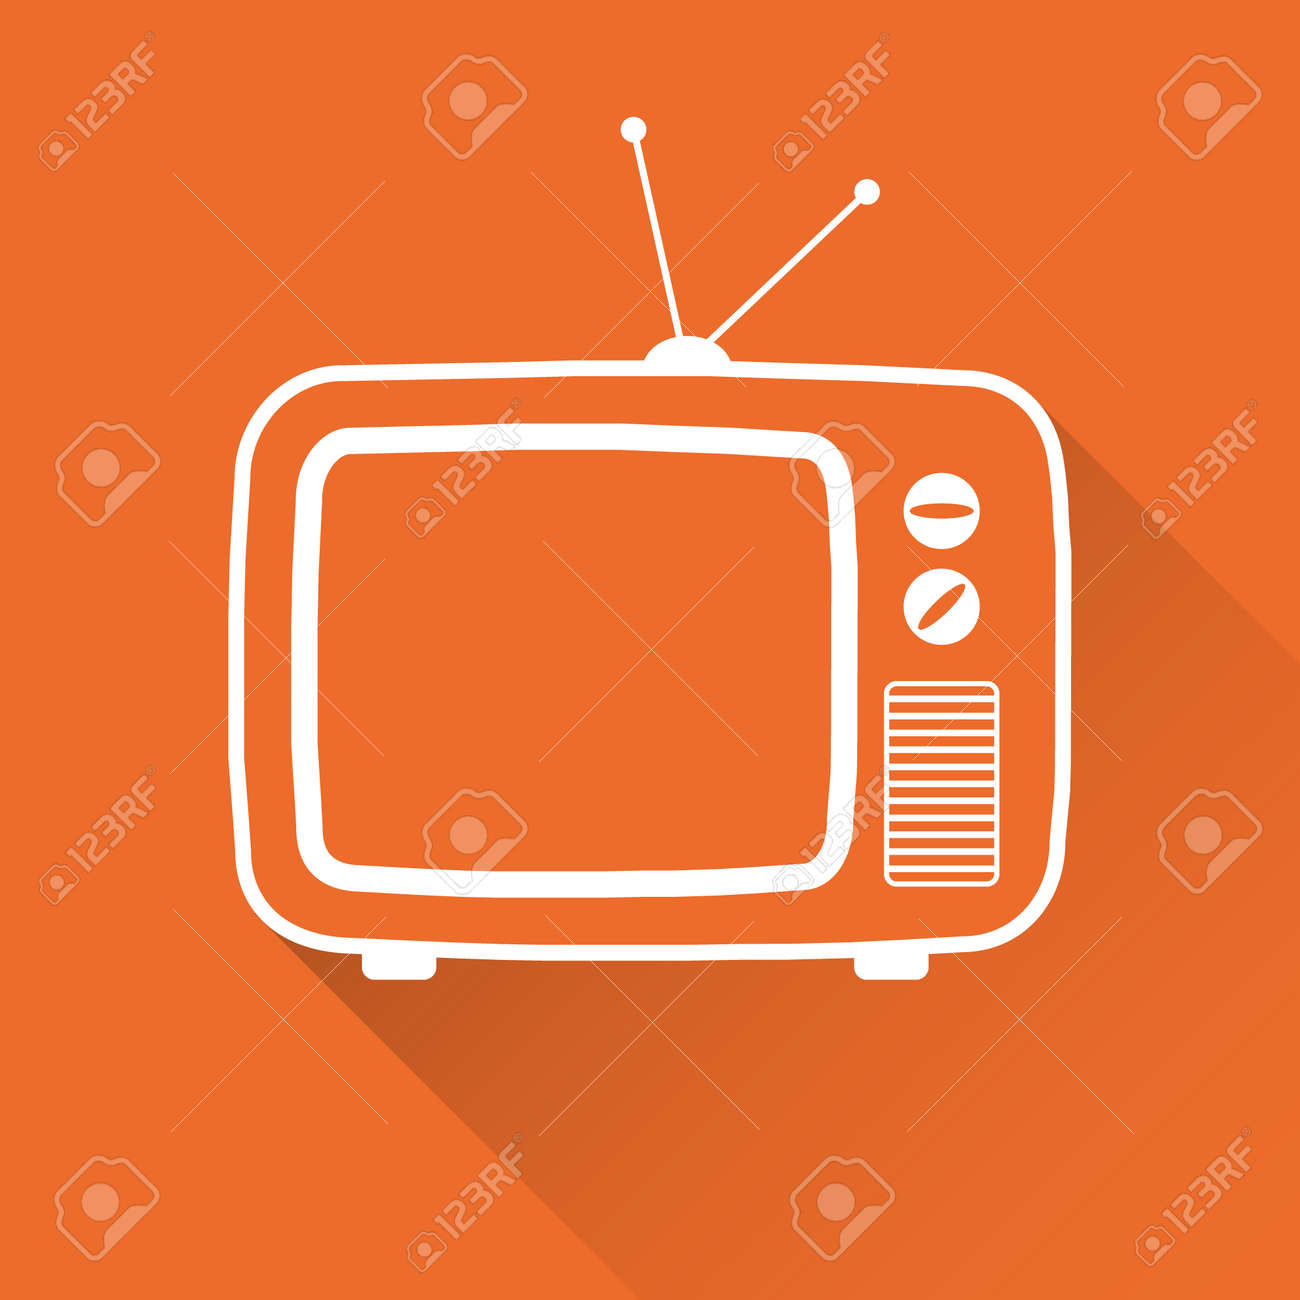 Retro TV, white old TV icon on a red background. Vector illustration. Vector. - 162890973